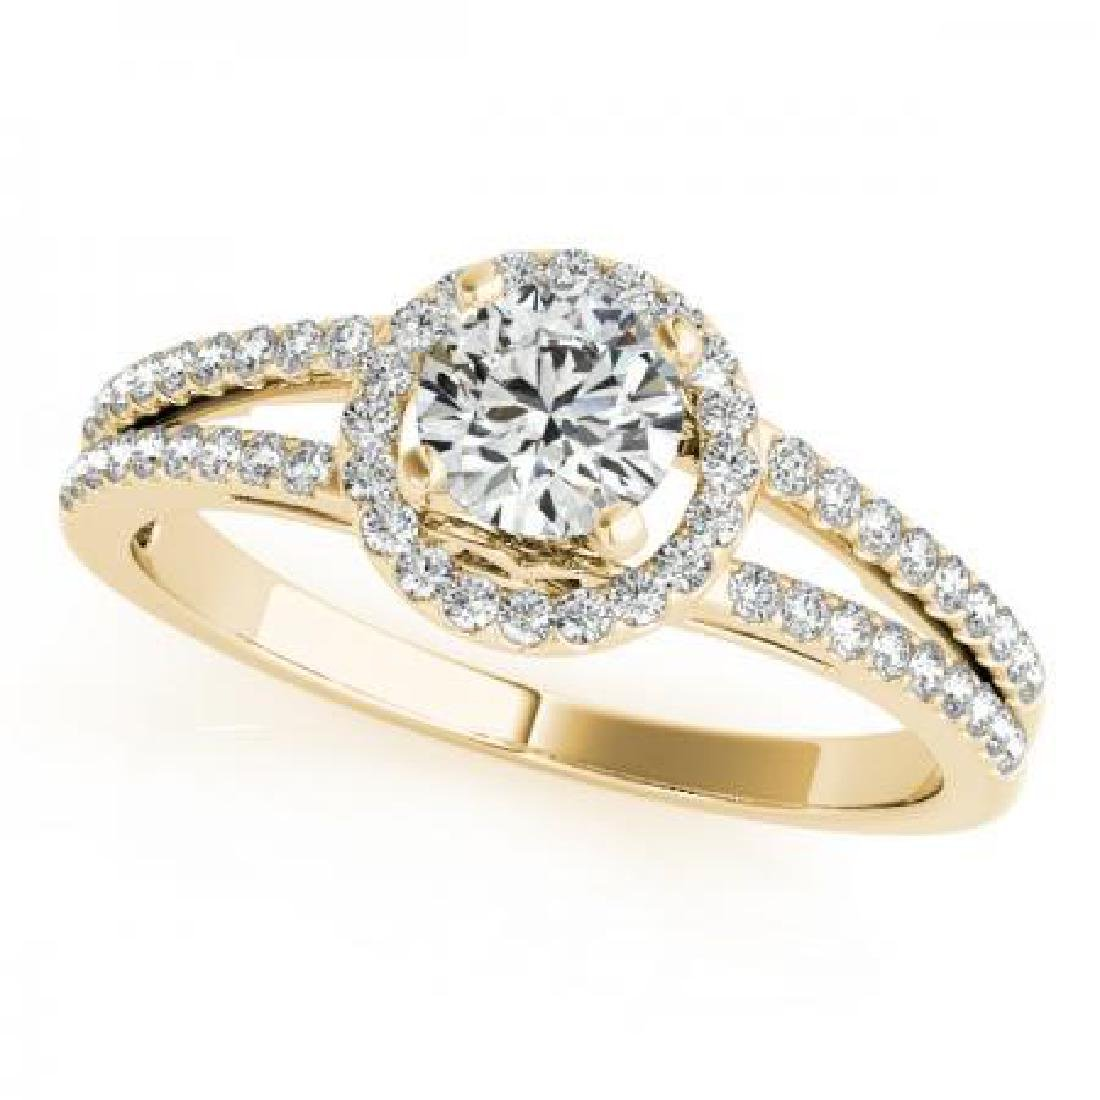 CERTIFIED 18K YELLOW GOLD .95 CT G-H/VS-SI1 DIAMOND HAL